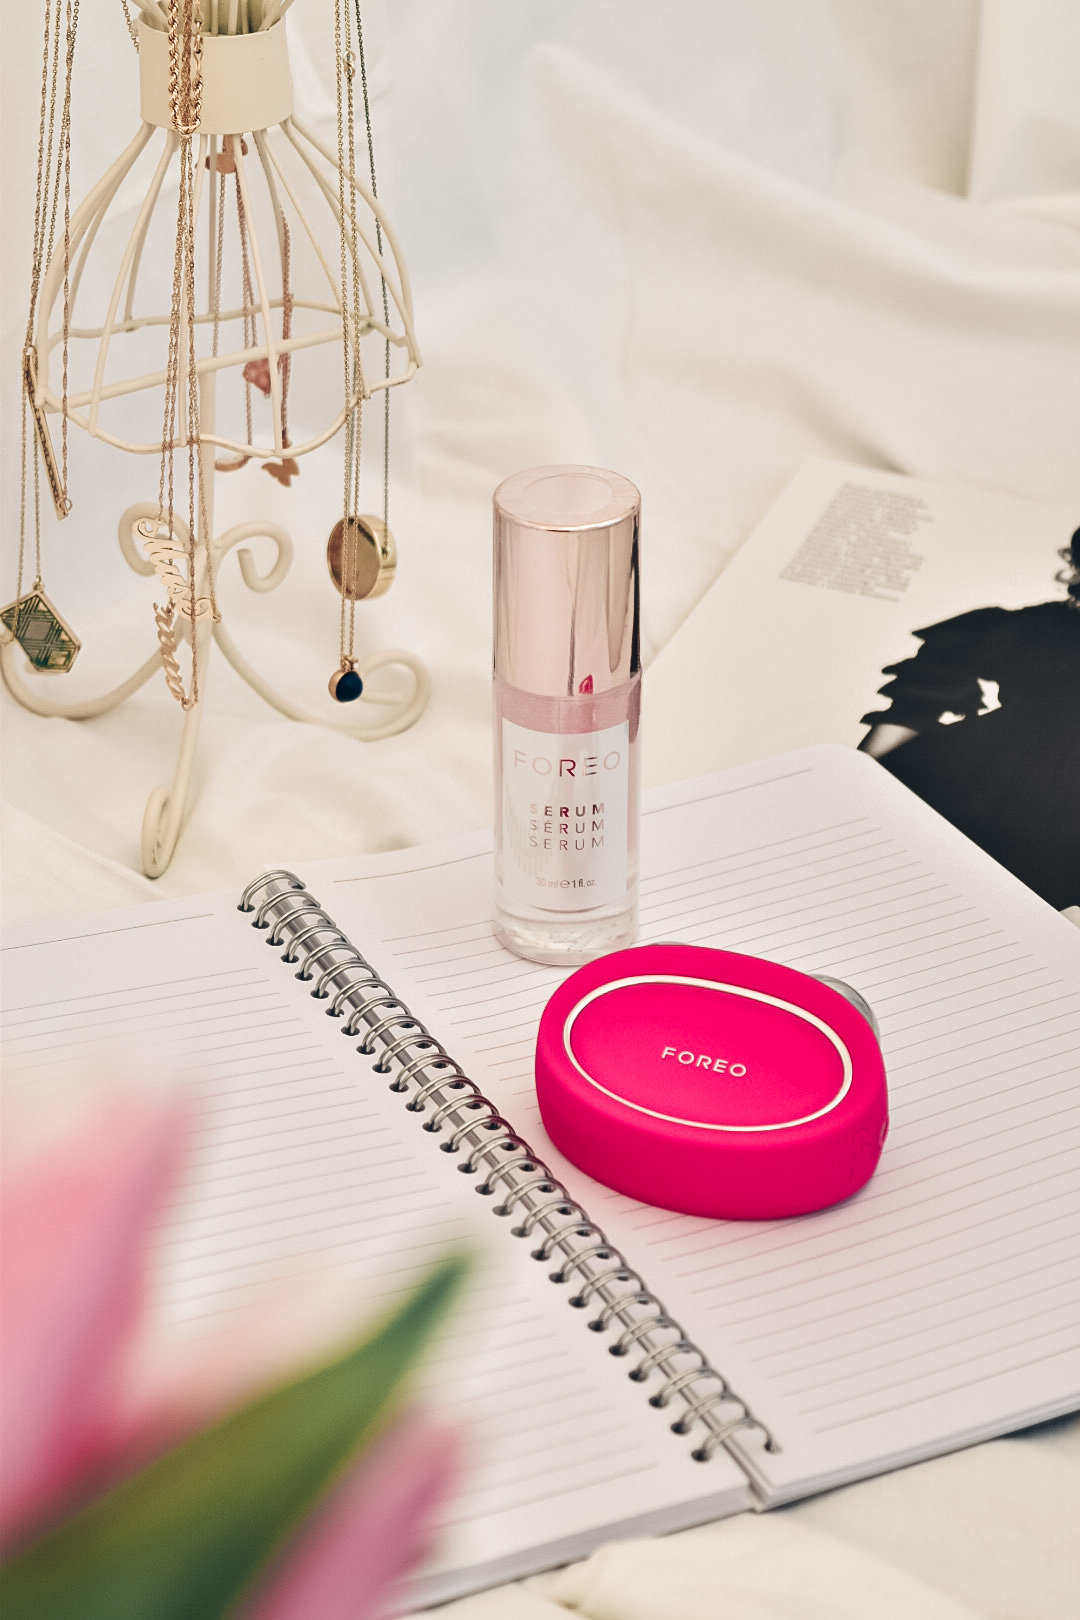 FOREO BEAR microcurrent facial firming and FOREO serum